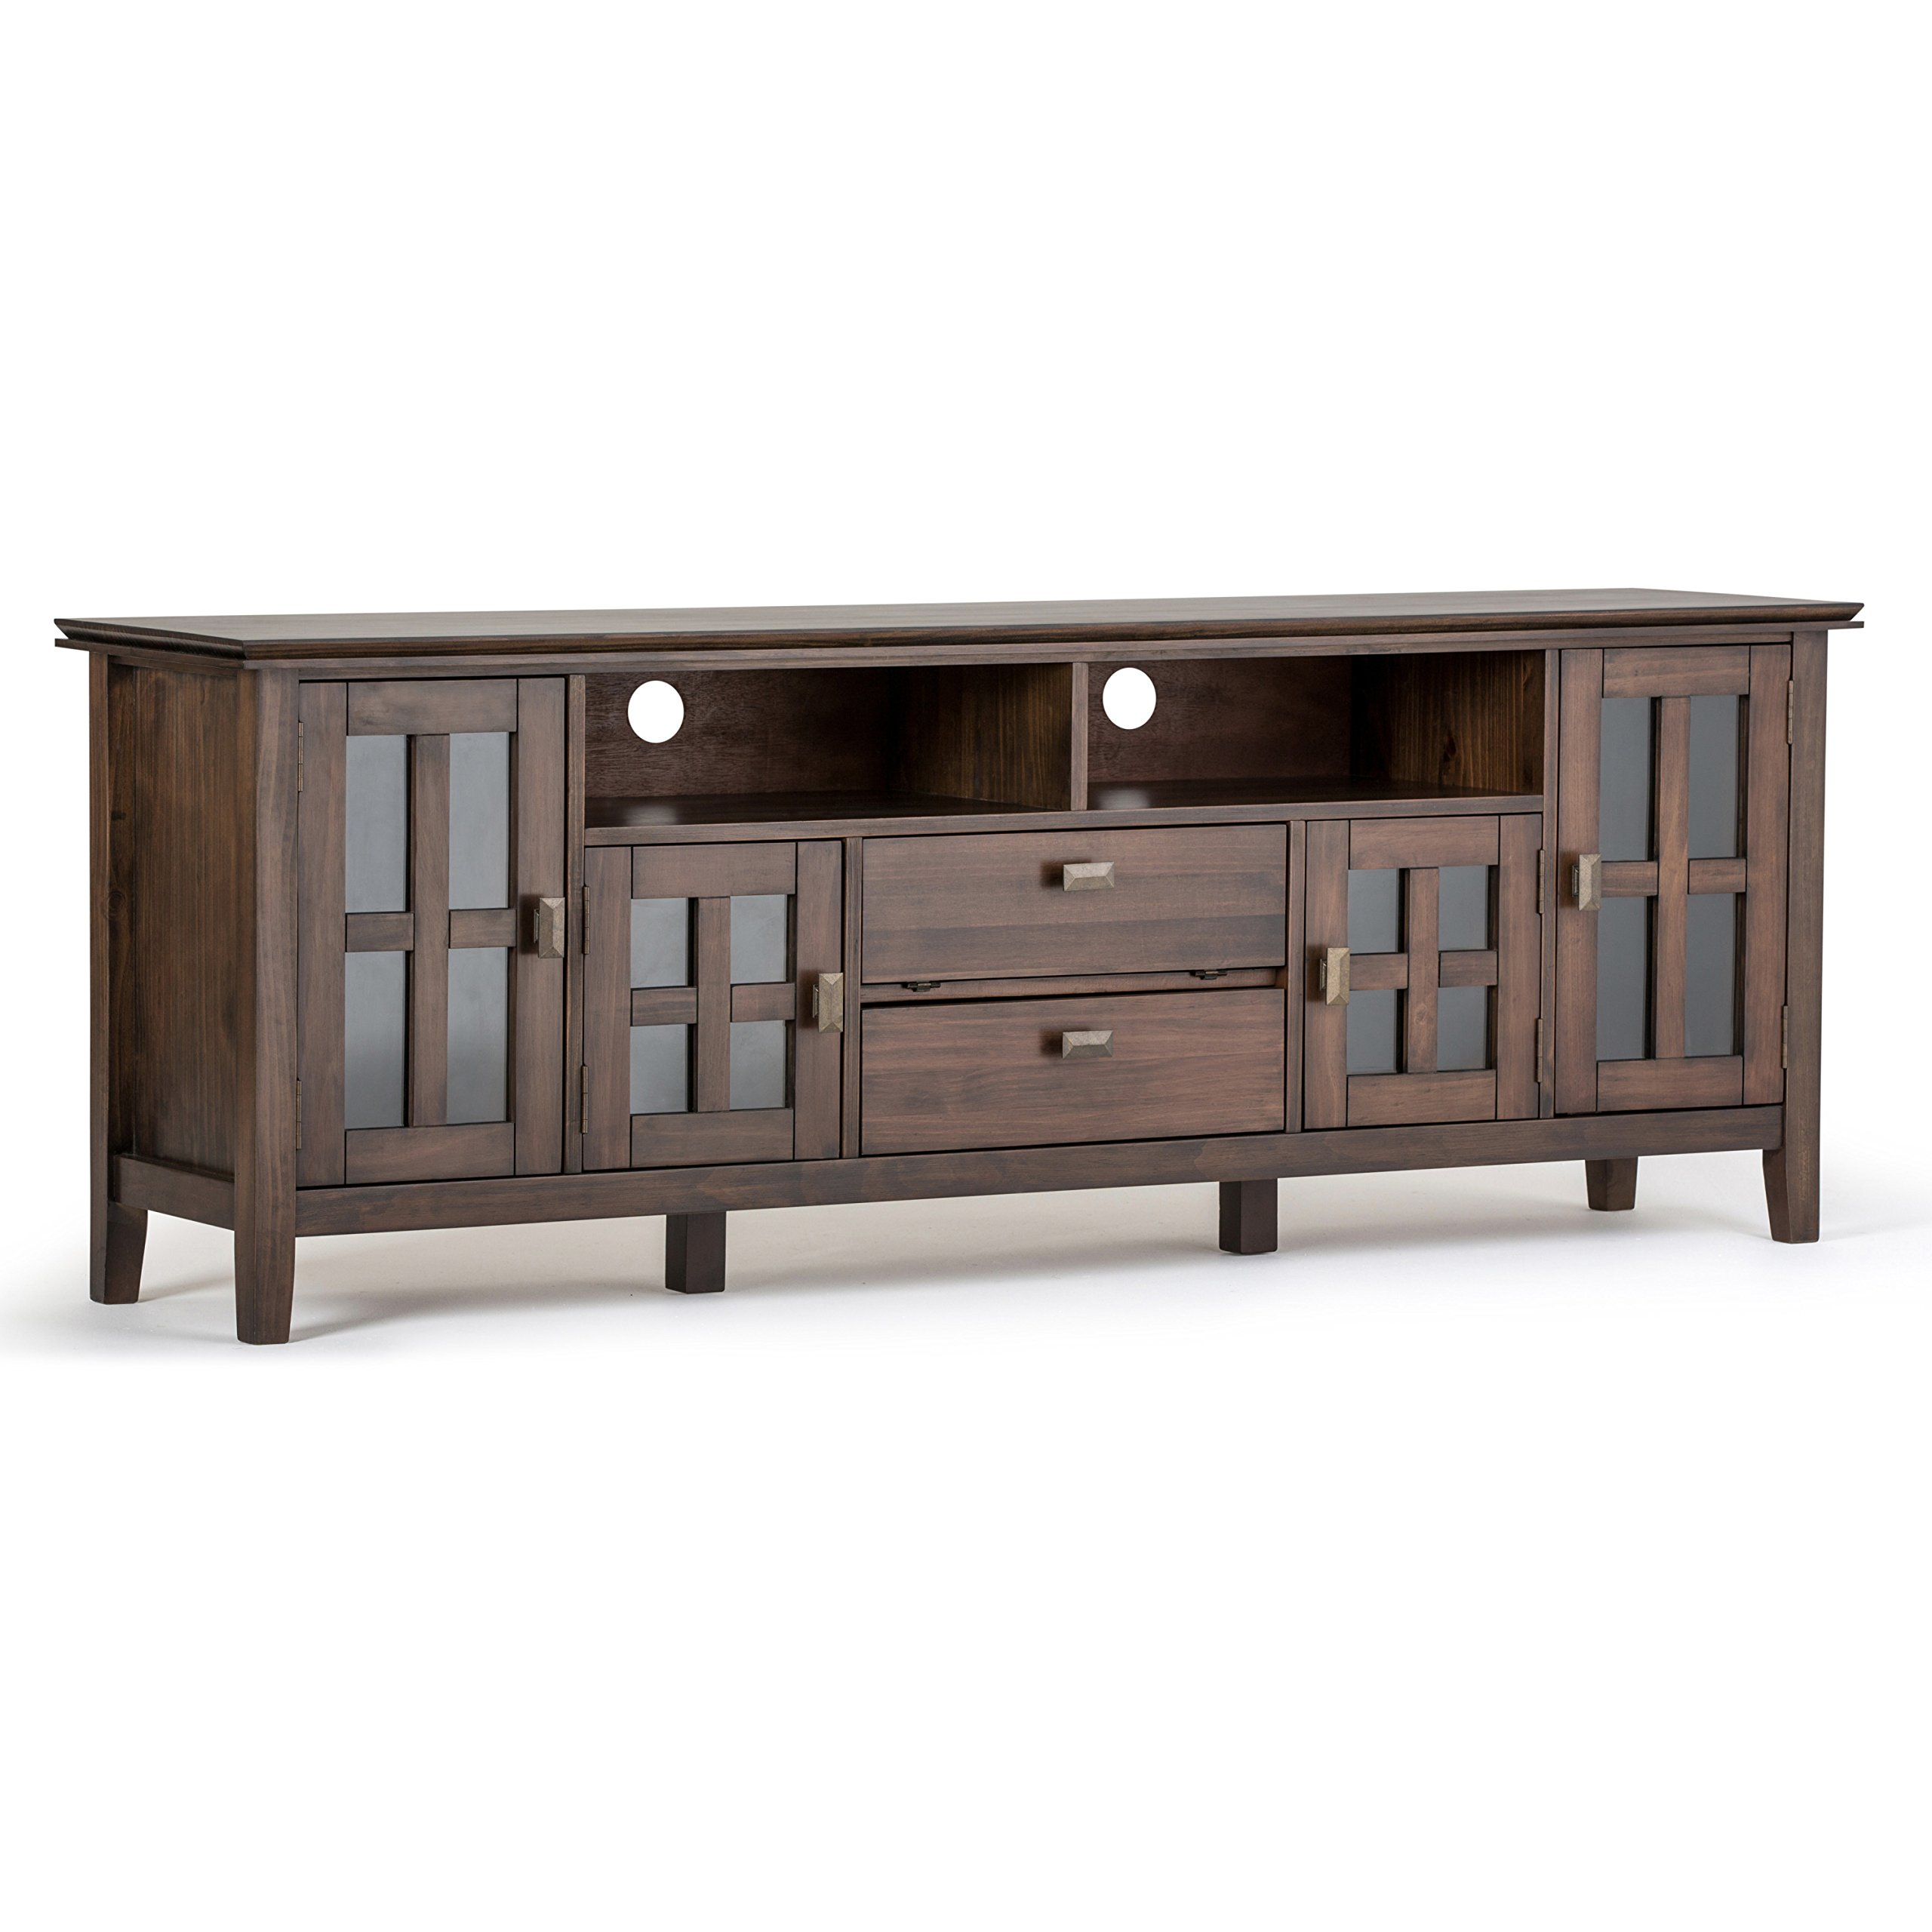 Simpli Home AXCHOL005-72-NAB Artisan Solid Wood 72 inch wide Contemporary TV media Stand in Natural Aged Brown For TVs up to 80 inches by Simpli Home